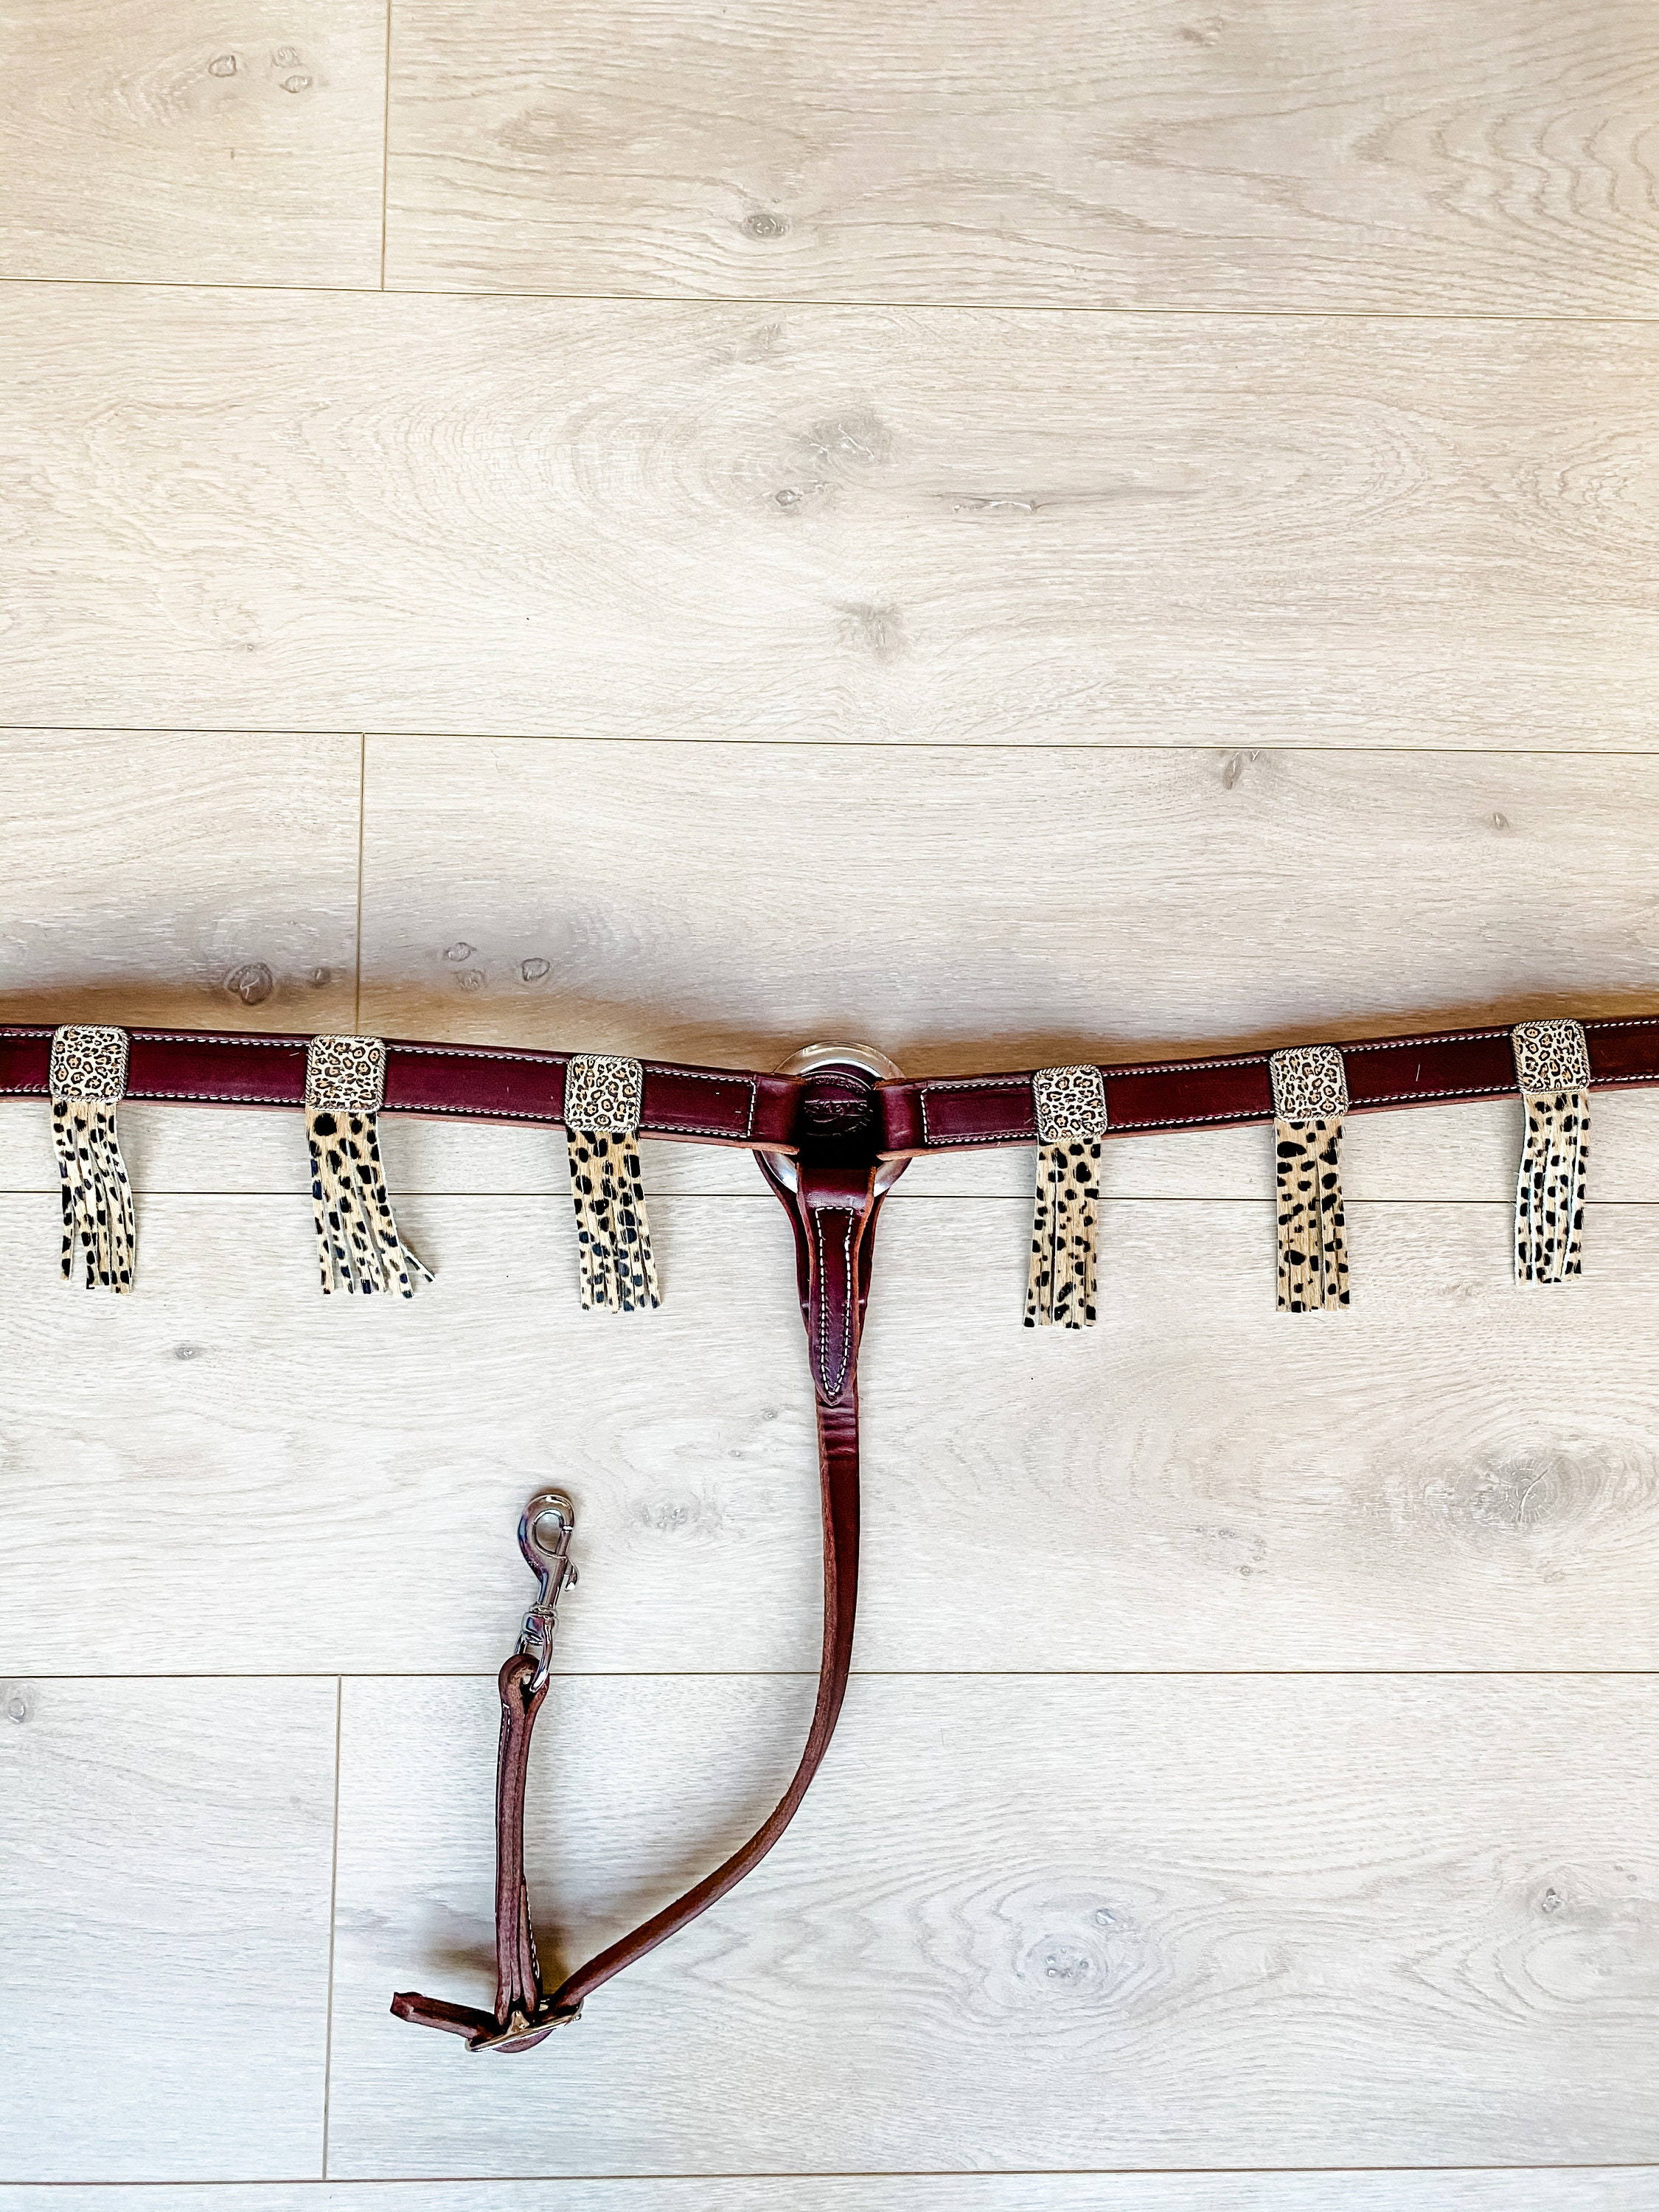 The Bling Cheetah Western Leather Breast Collar, bling conchos and cheetah hair on hide fringes